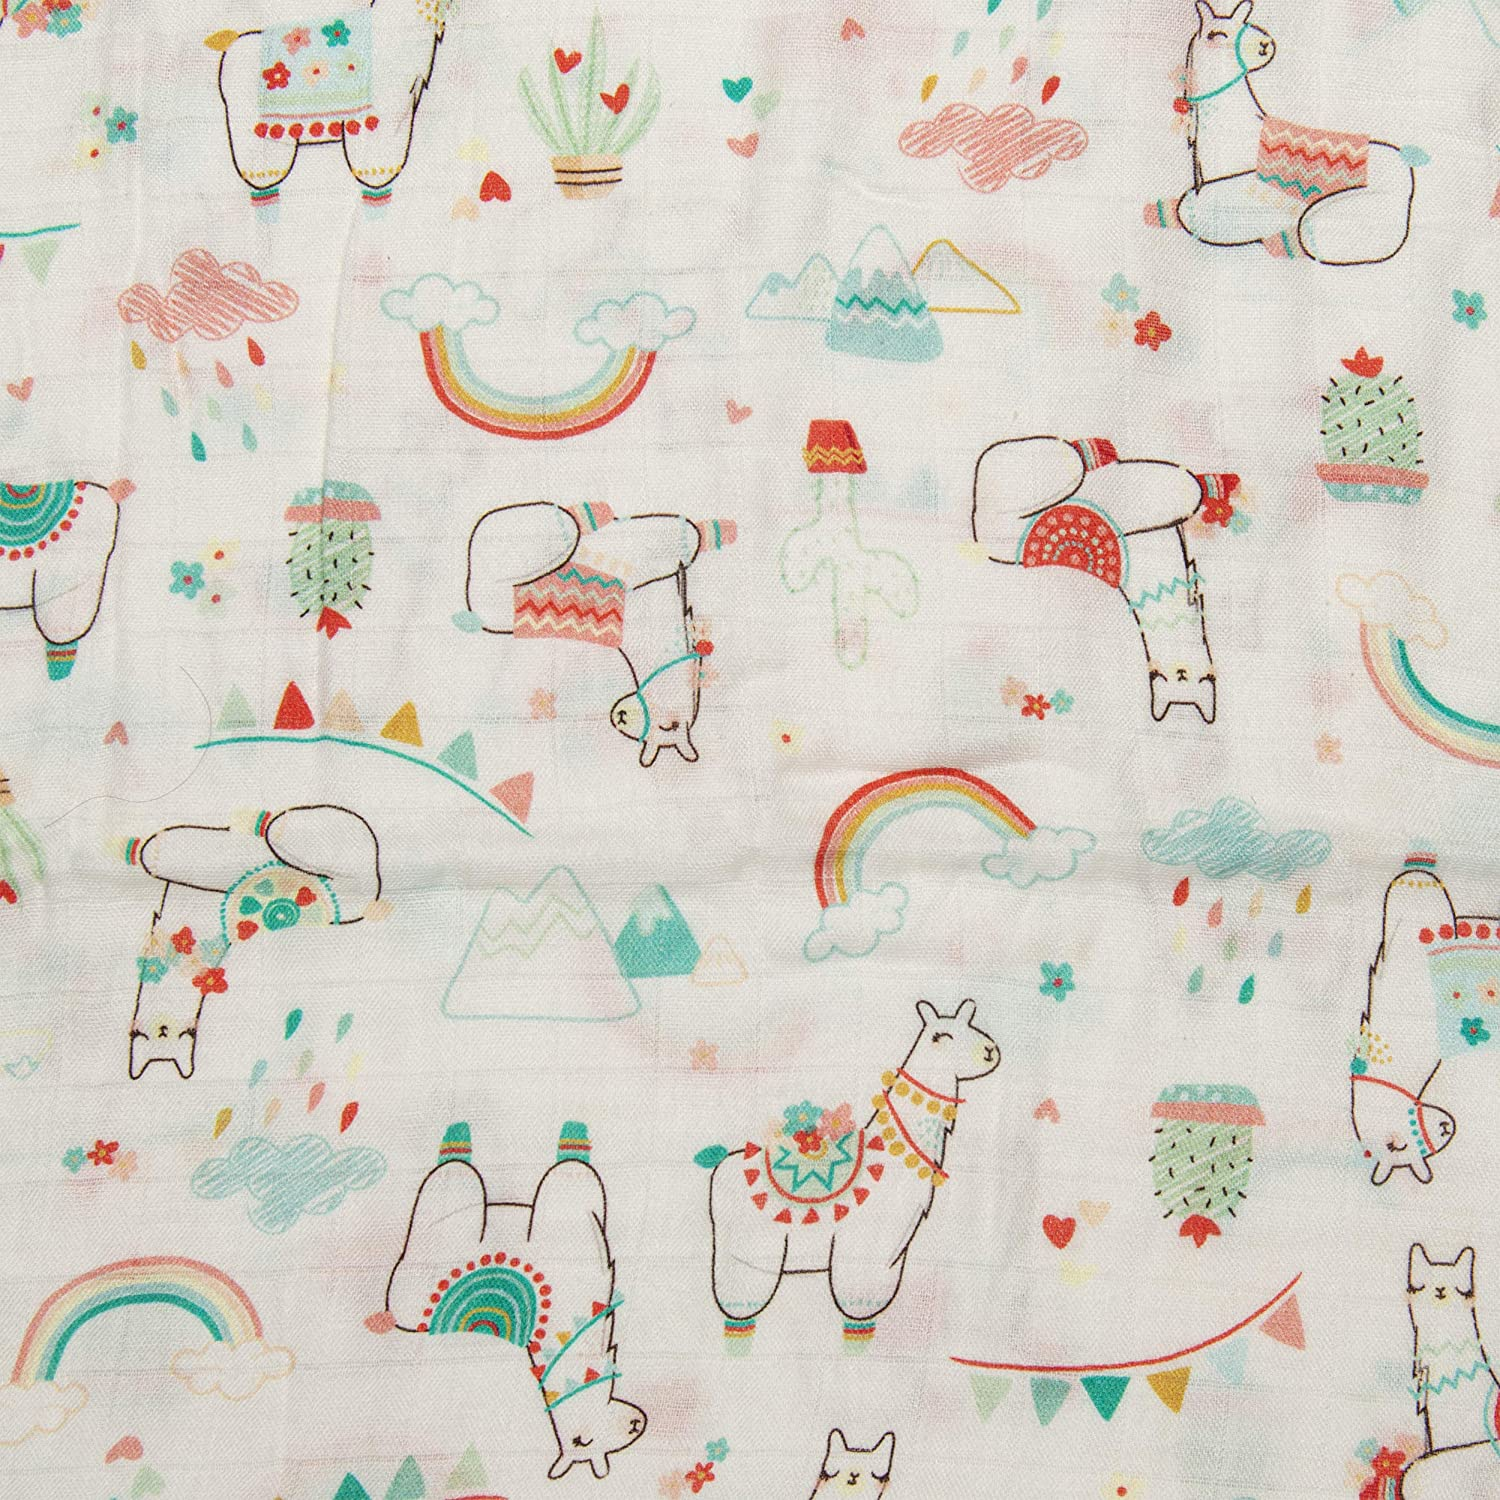 Llama 47 x 47 Baby Swaddle Wrap Blanket for Girls and Boys Best Baby Receiving Blanket Loulou LOLLIPOP Soft Muslin Swaddle Blanket